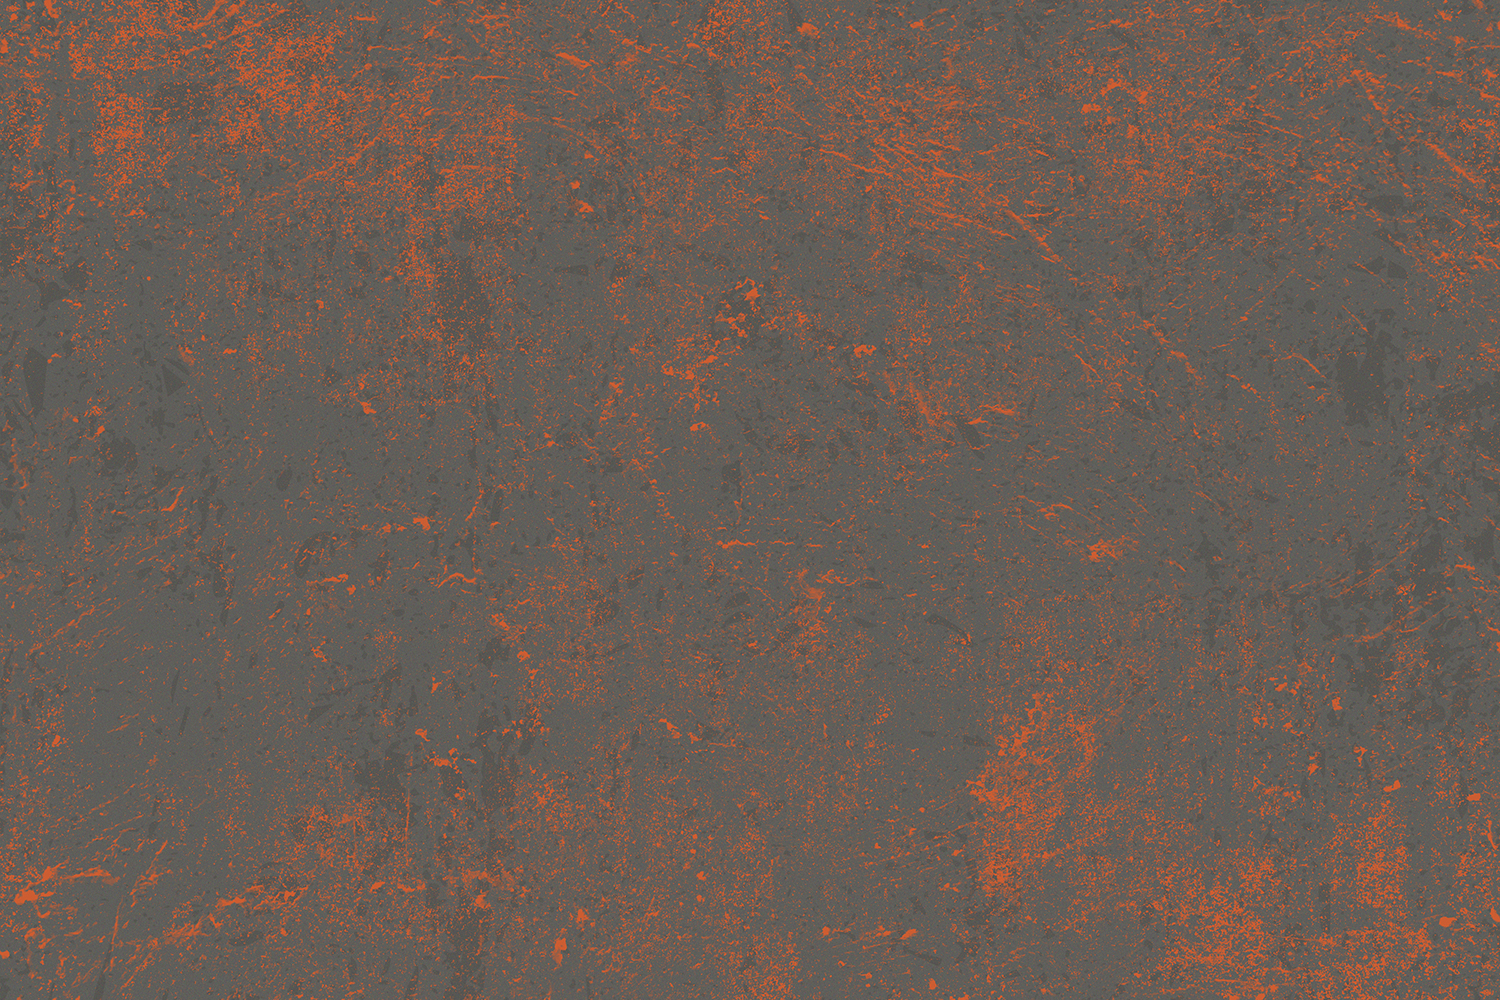 Grunge Texture Backgrounds example image 20